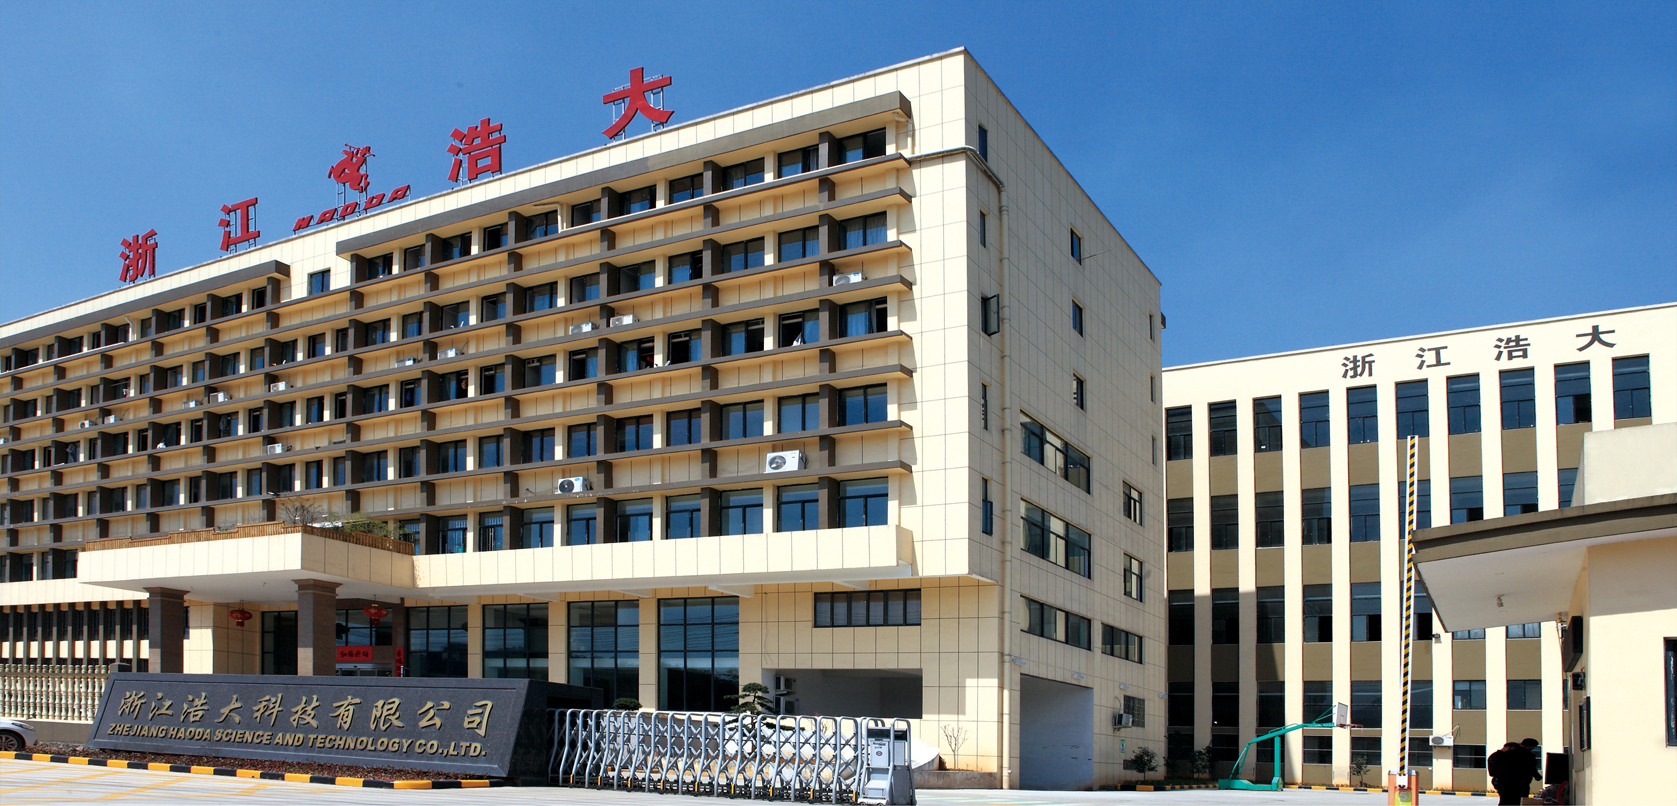 Zhejiang Haoda Science And Technology Co.,Ltd.